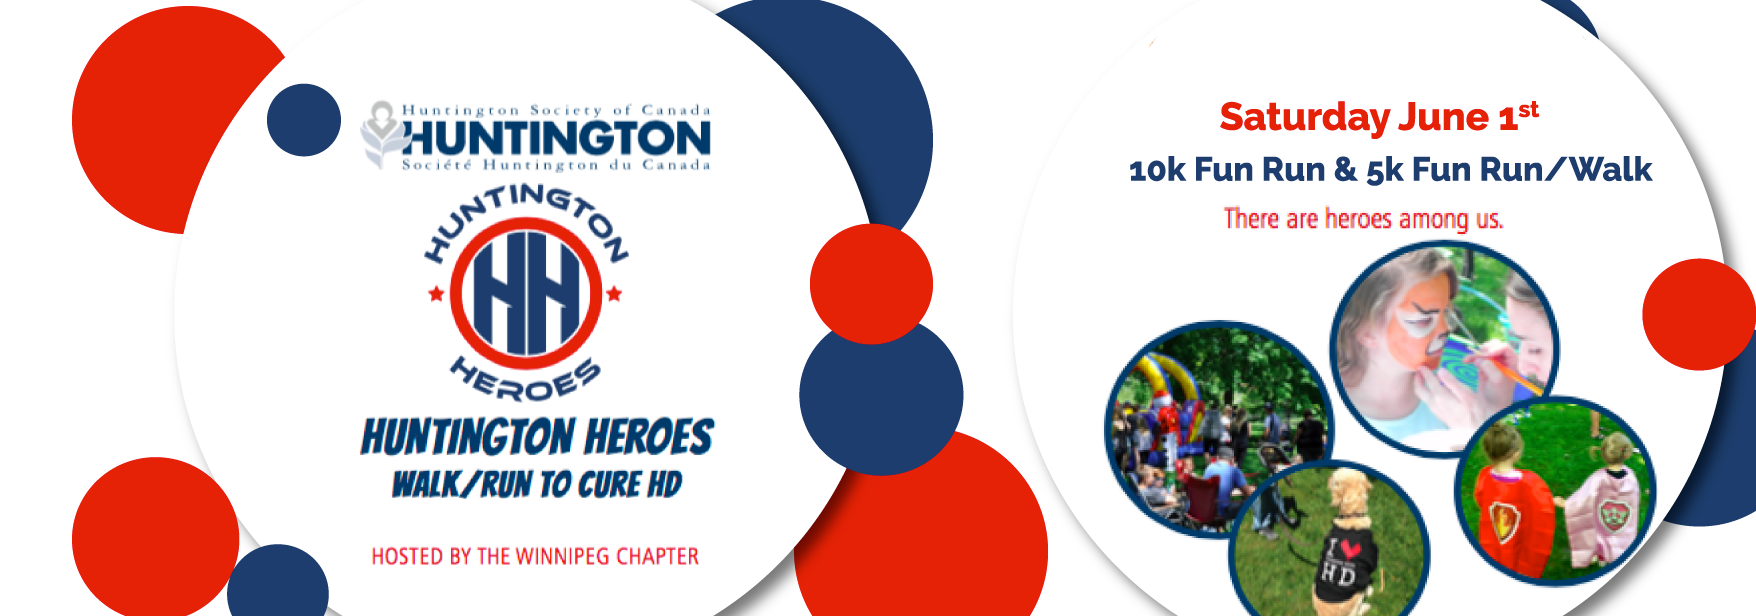 Huntington Heroes Walk/Run to Cure HD